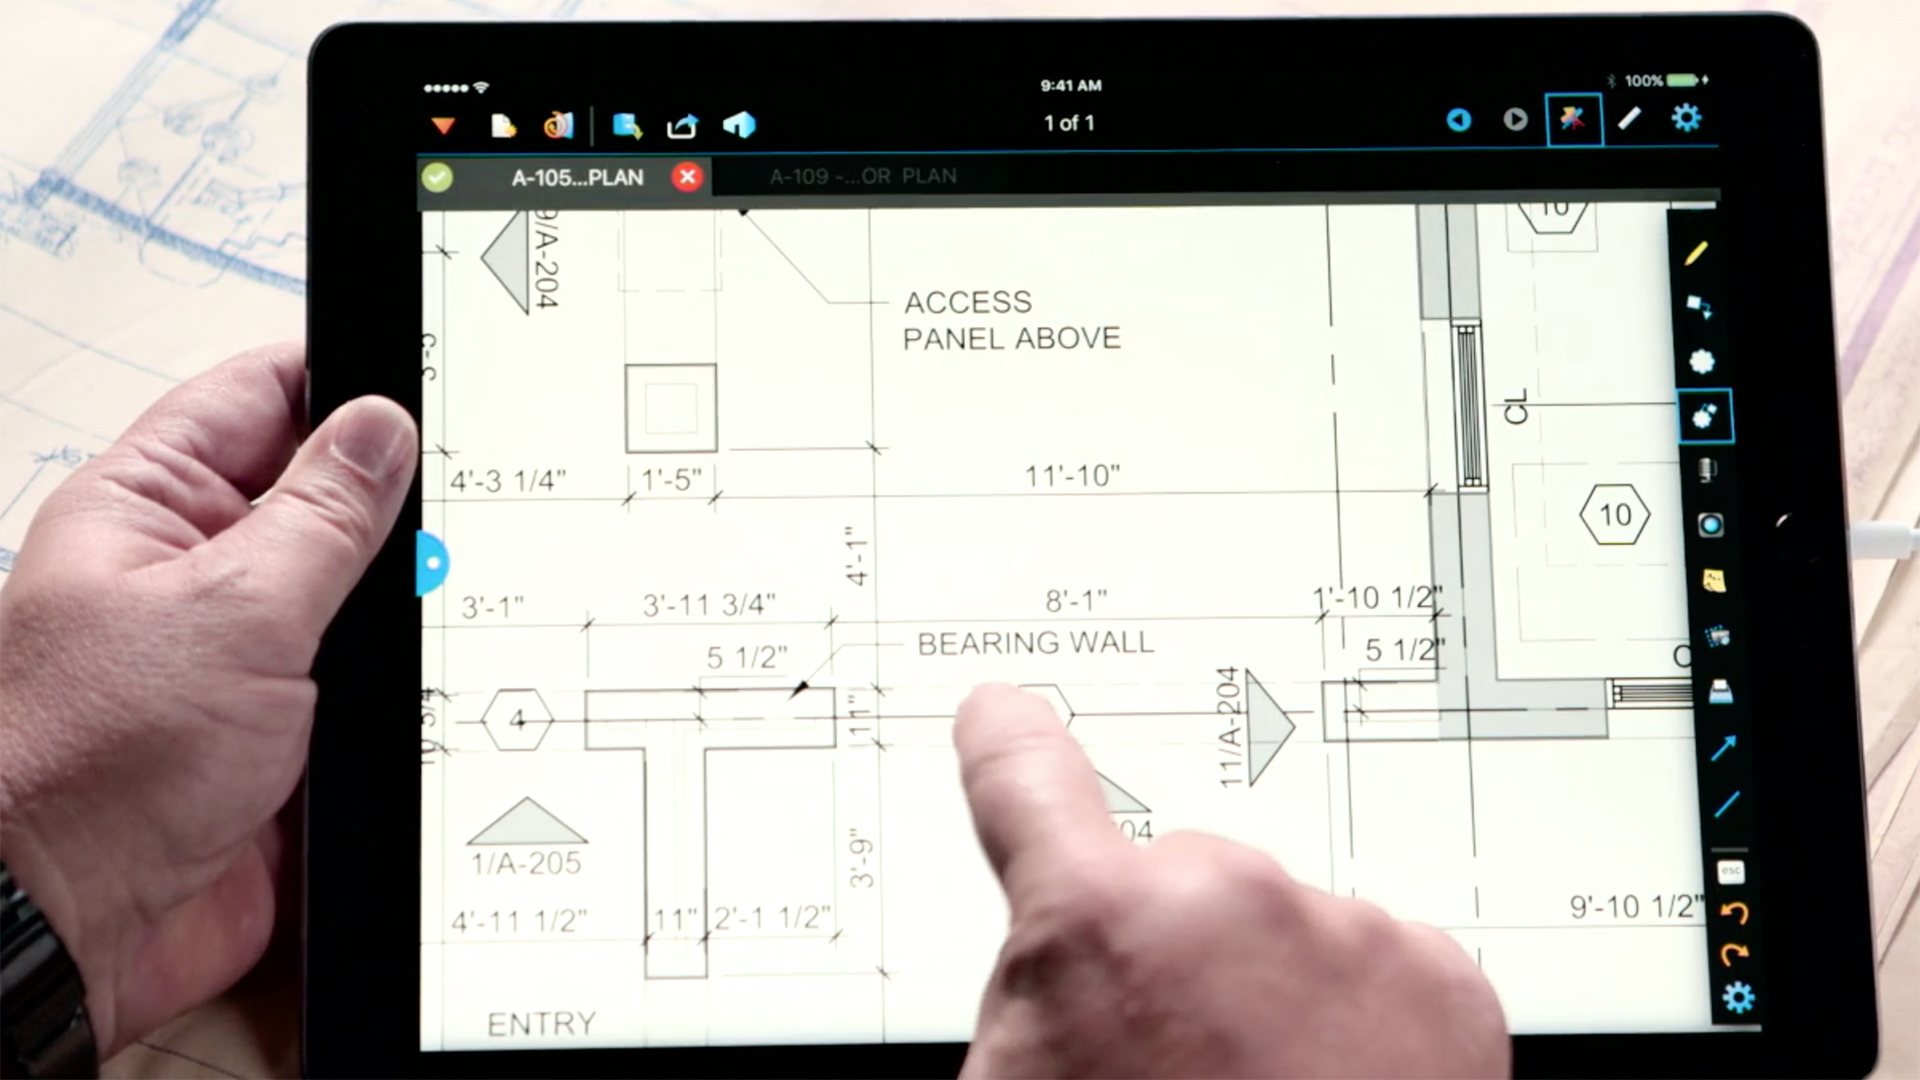 Construction Drawings: BlueBeam for the iPad